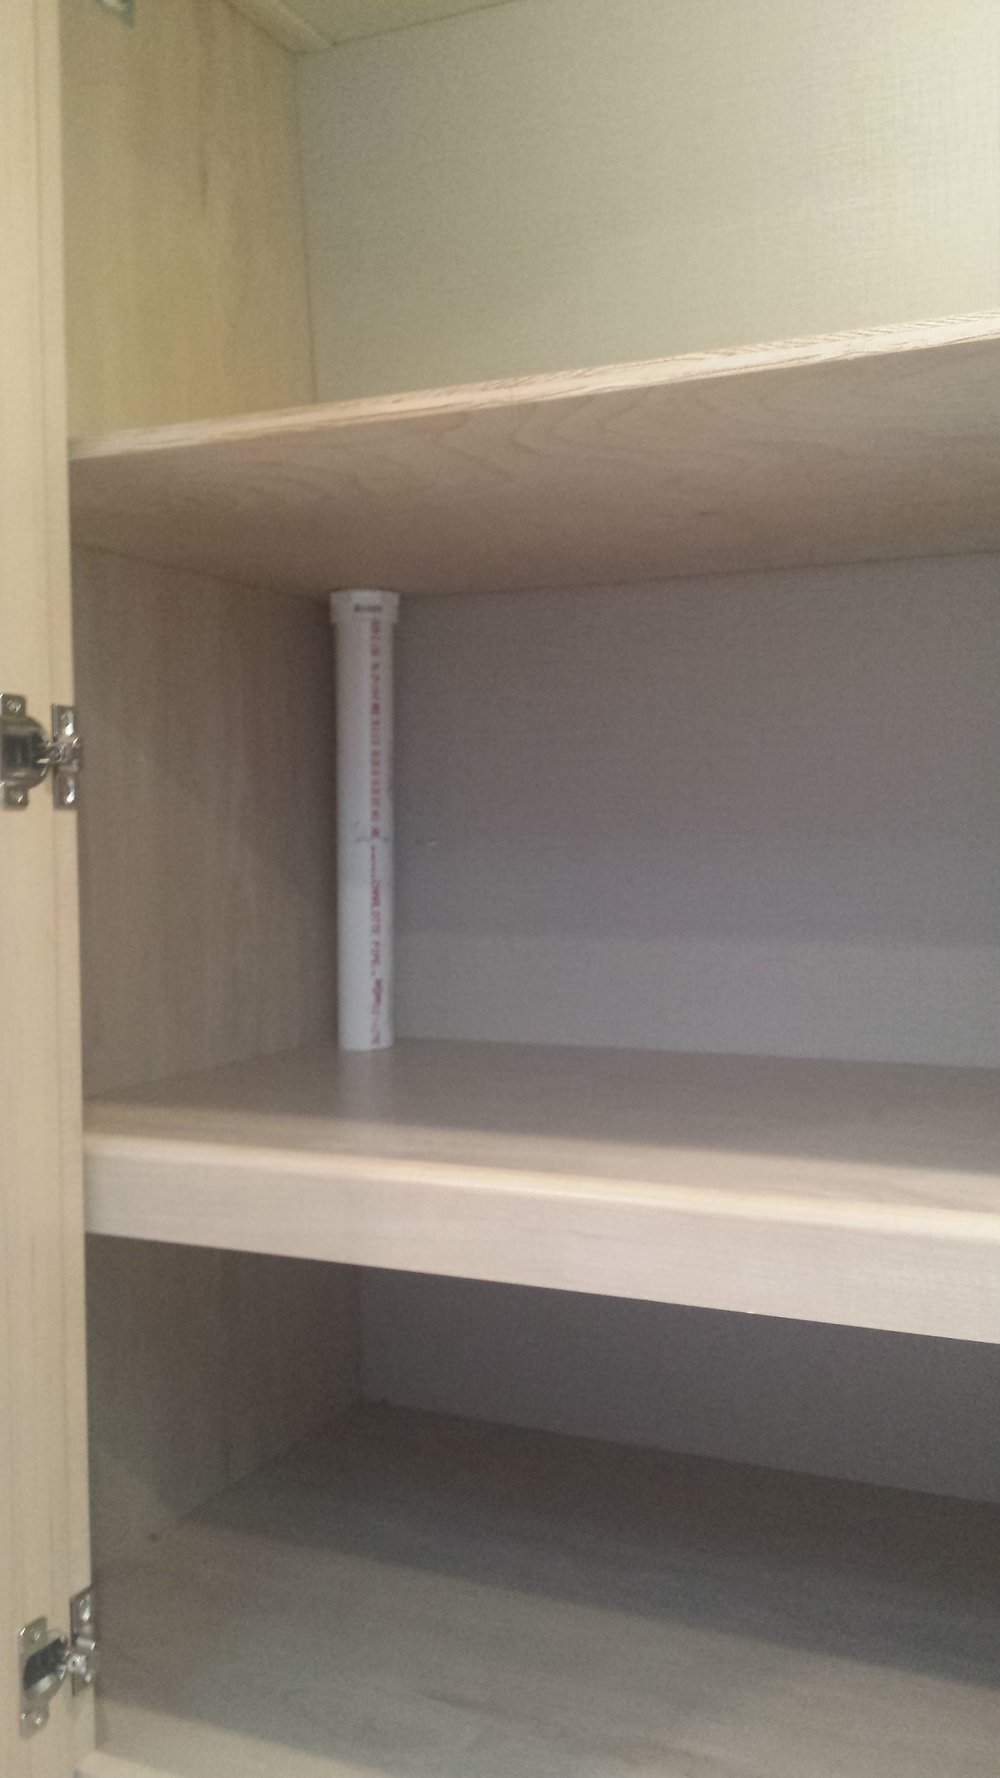 An extra shelf replaces a hanging rod in our small RV wardrobe. when we take long trips.